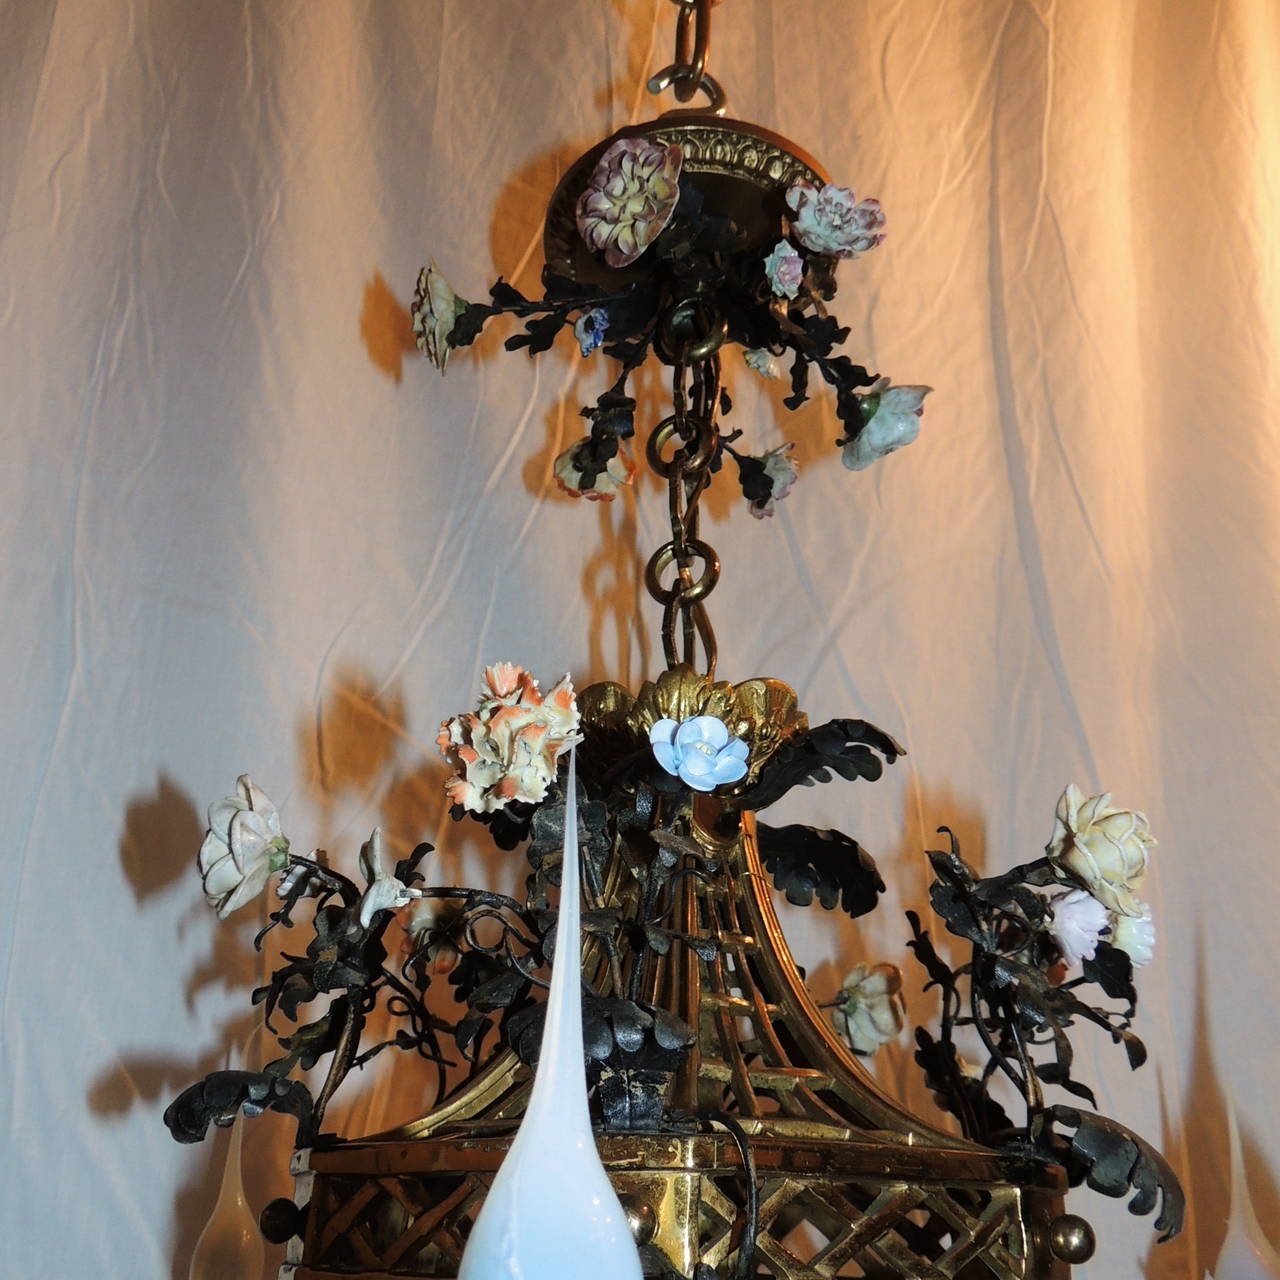 This very delicately detailed porcelain flower French bronze lantern has four arms and a light in the lantern. Each of the scroll decorated arms frame the beautiful lantern which has the original textured glass which is on the four panels. The